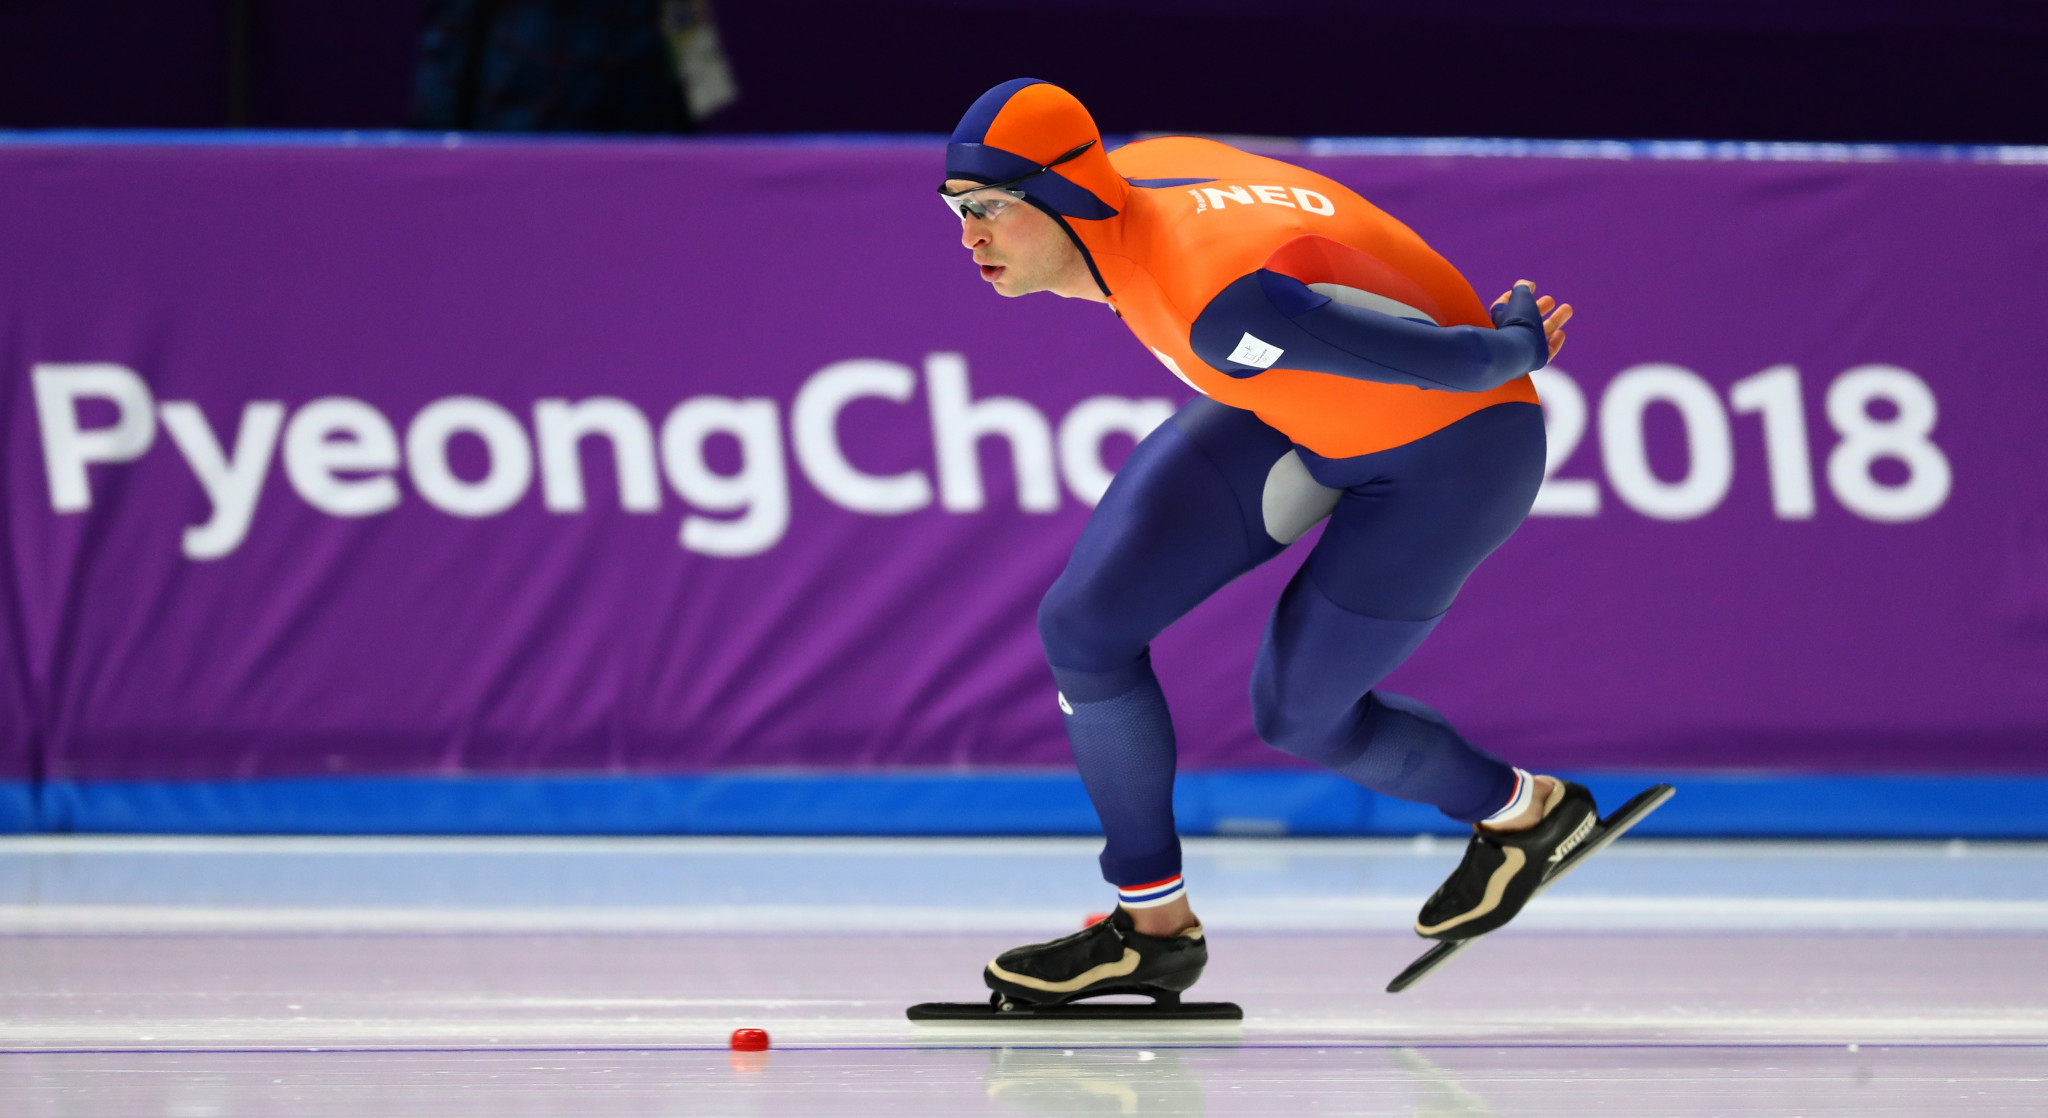 Kramer skates into history books with third consecutive Olympic 5,000m title at Pyeongchang 2018